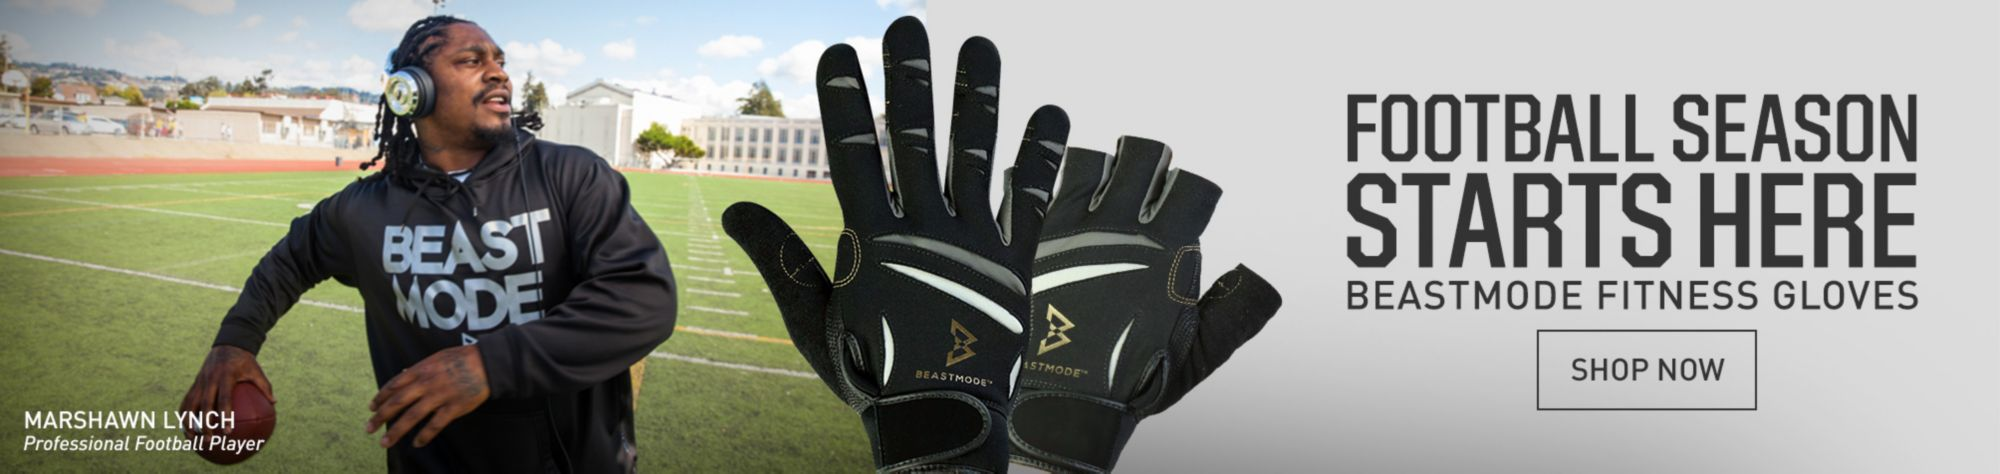 Shop Beast Mode Gloves